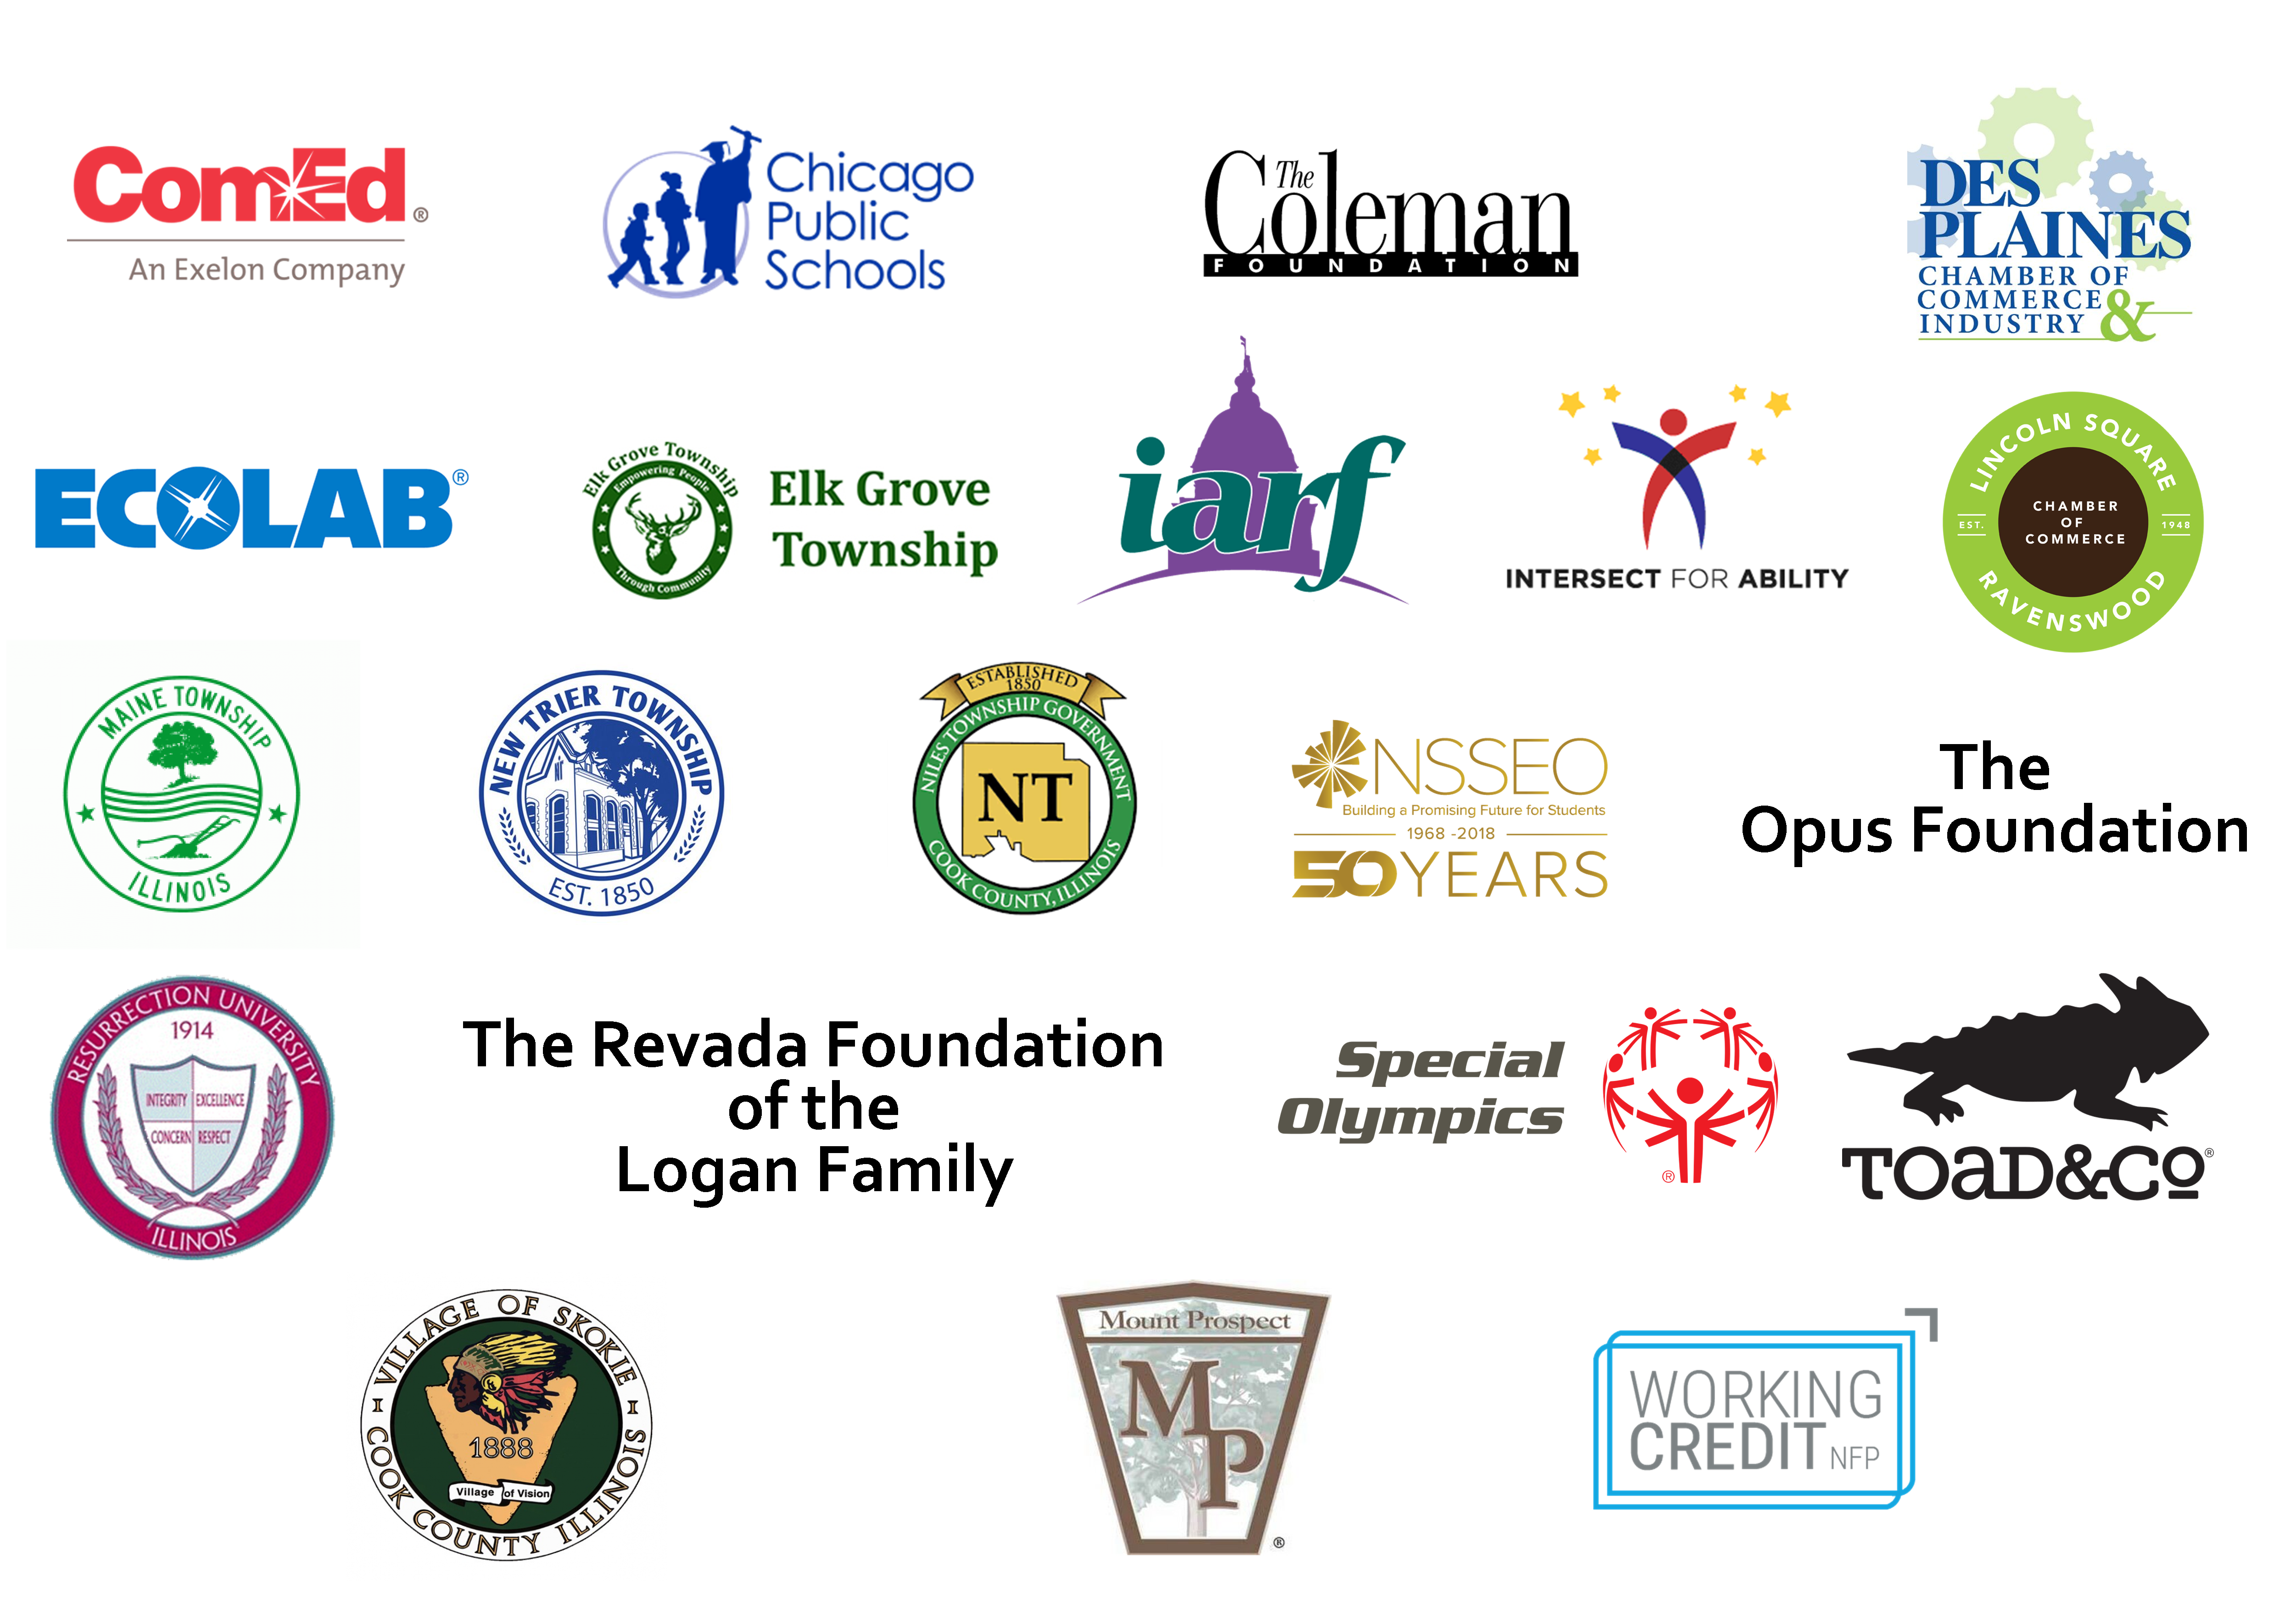 Image cluster of logos that Search, Inc. has partnered with